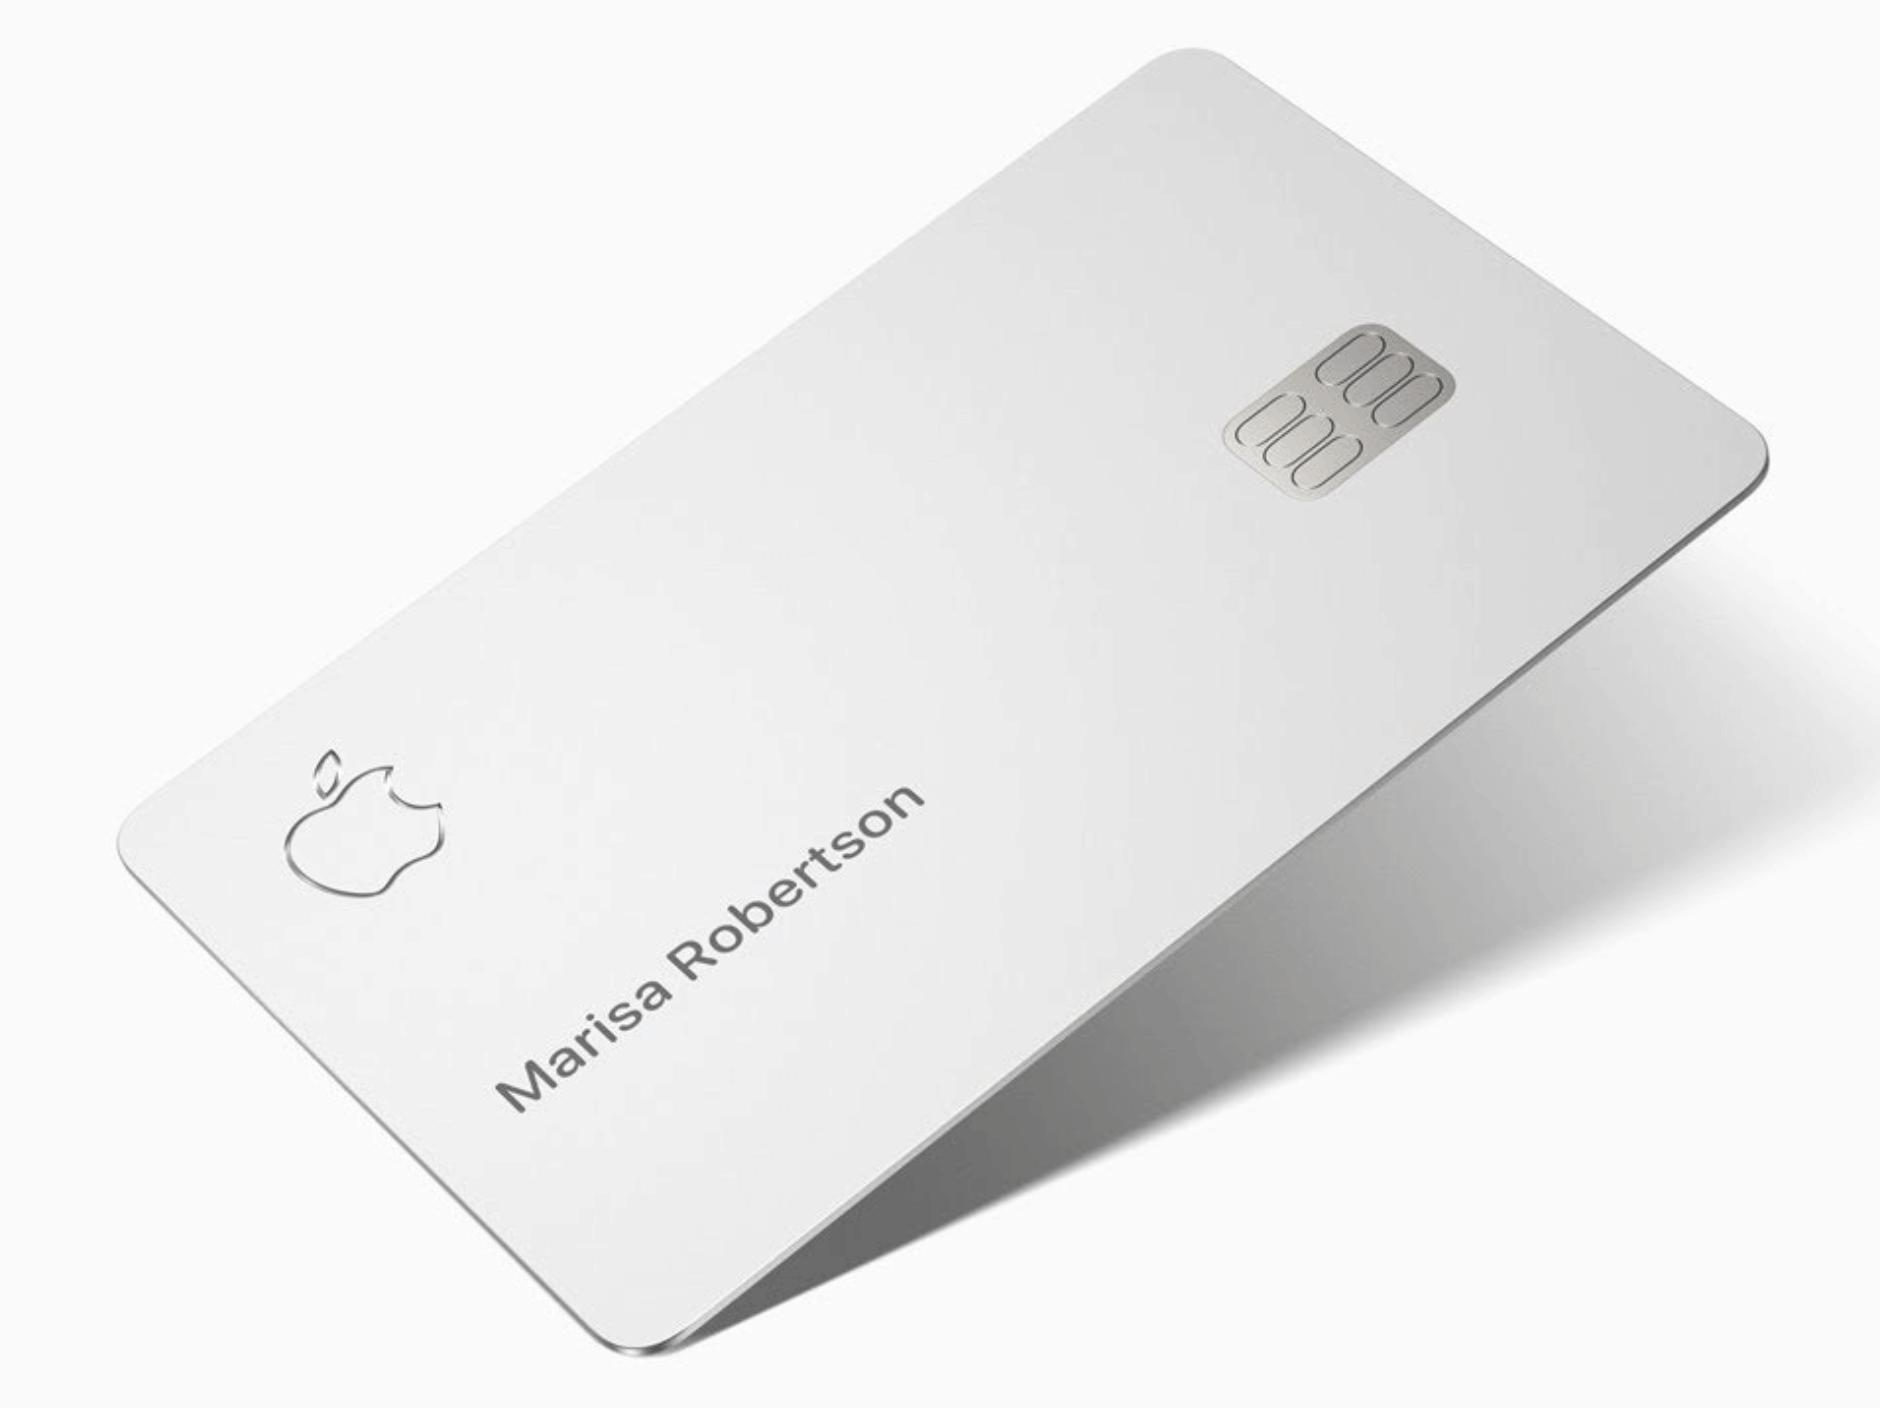 Approve rate Apple Card